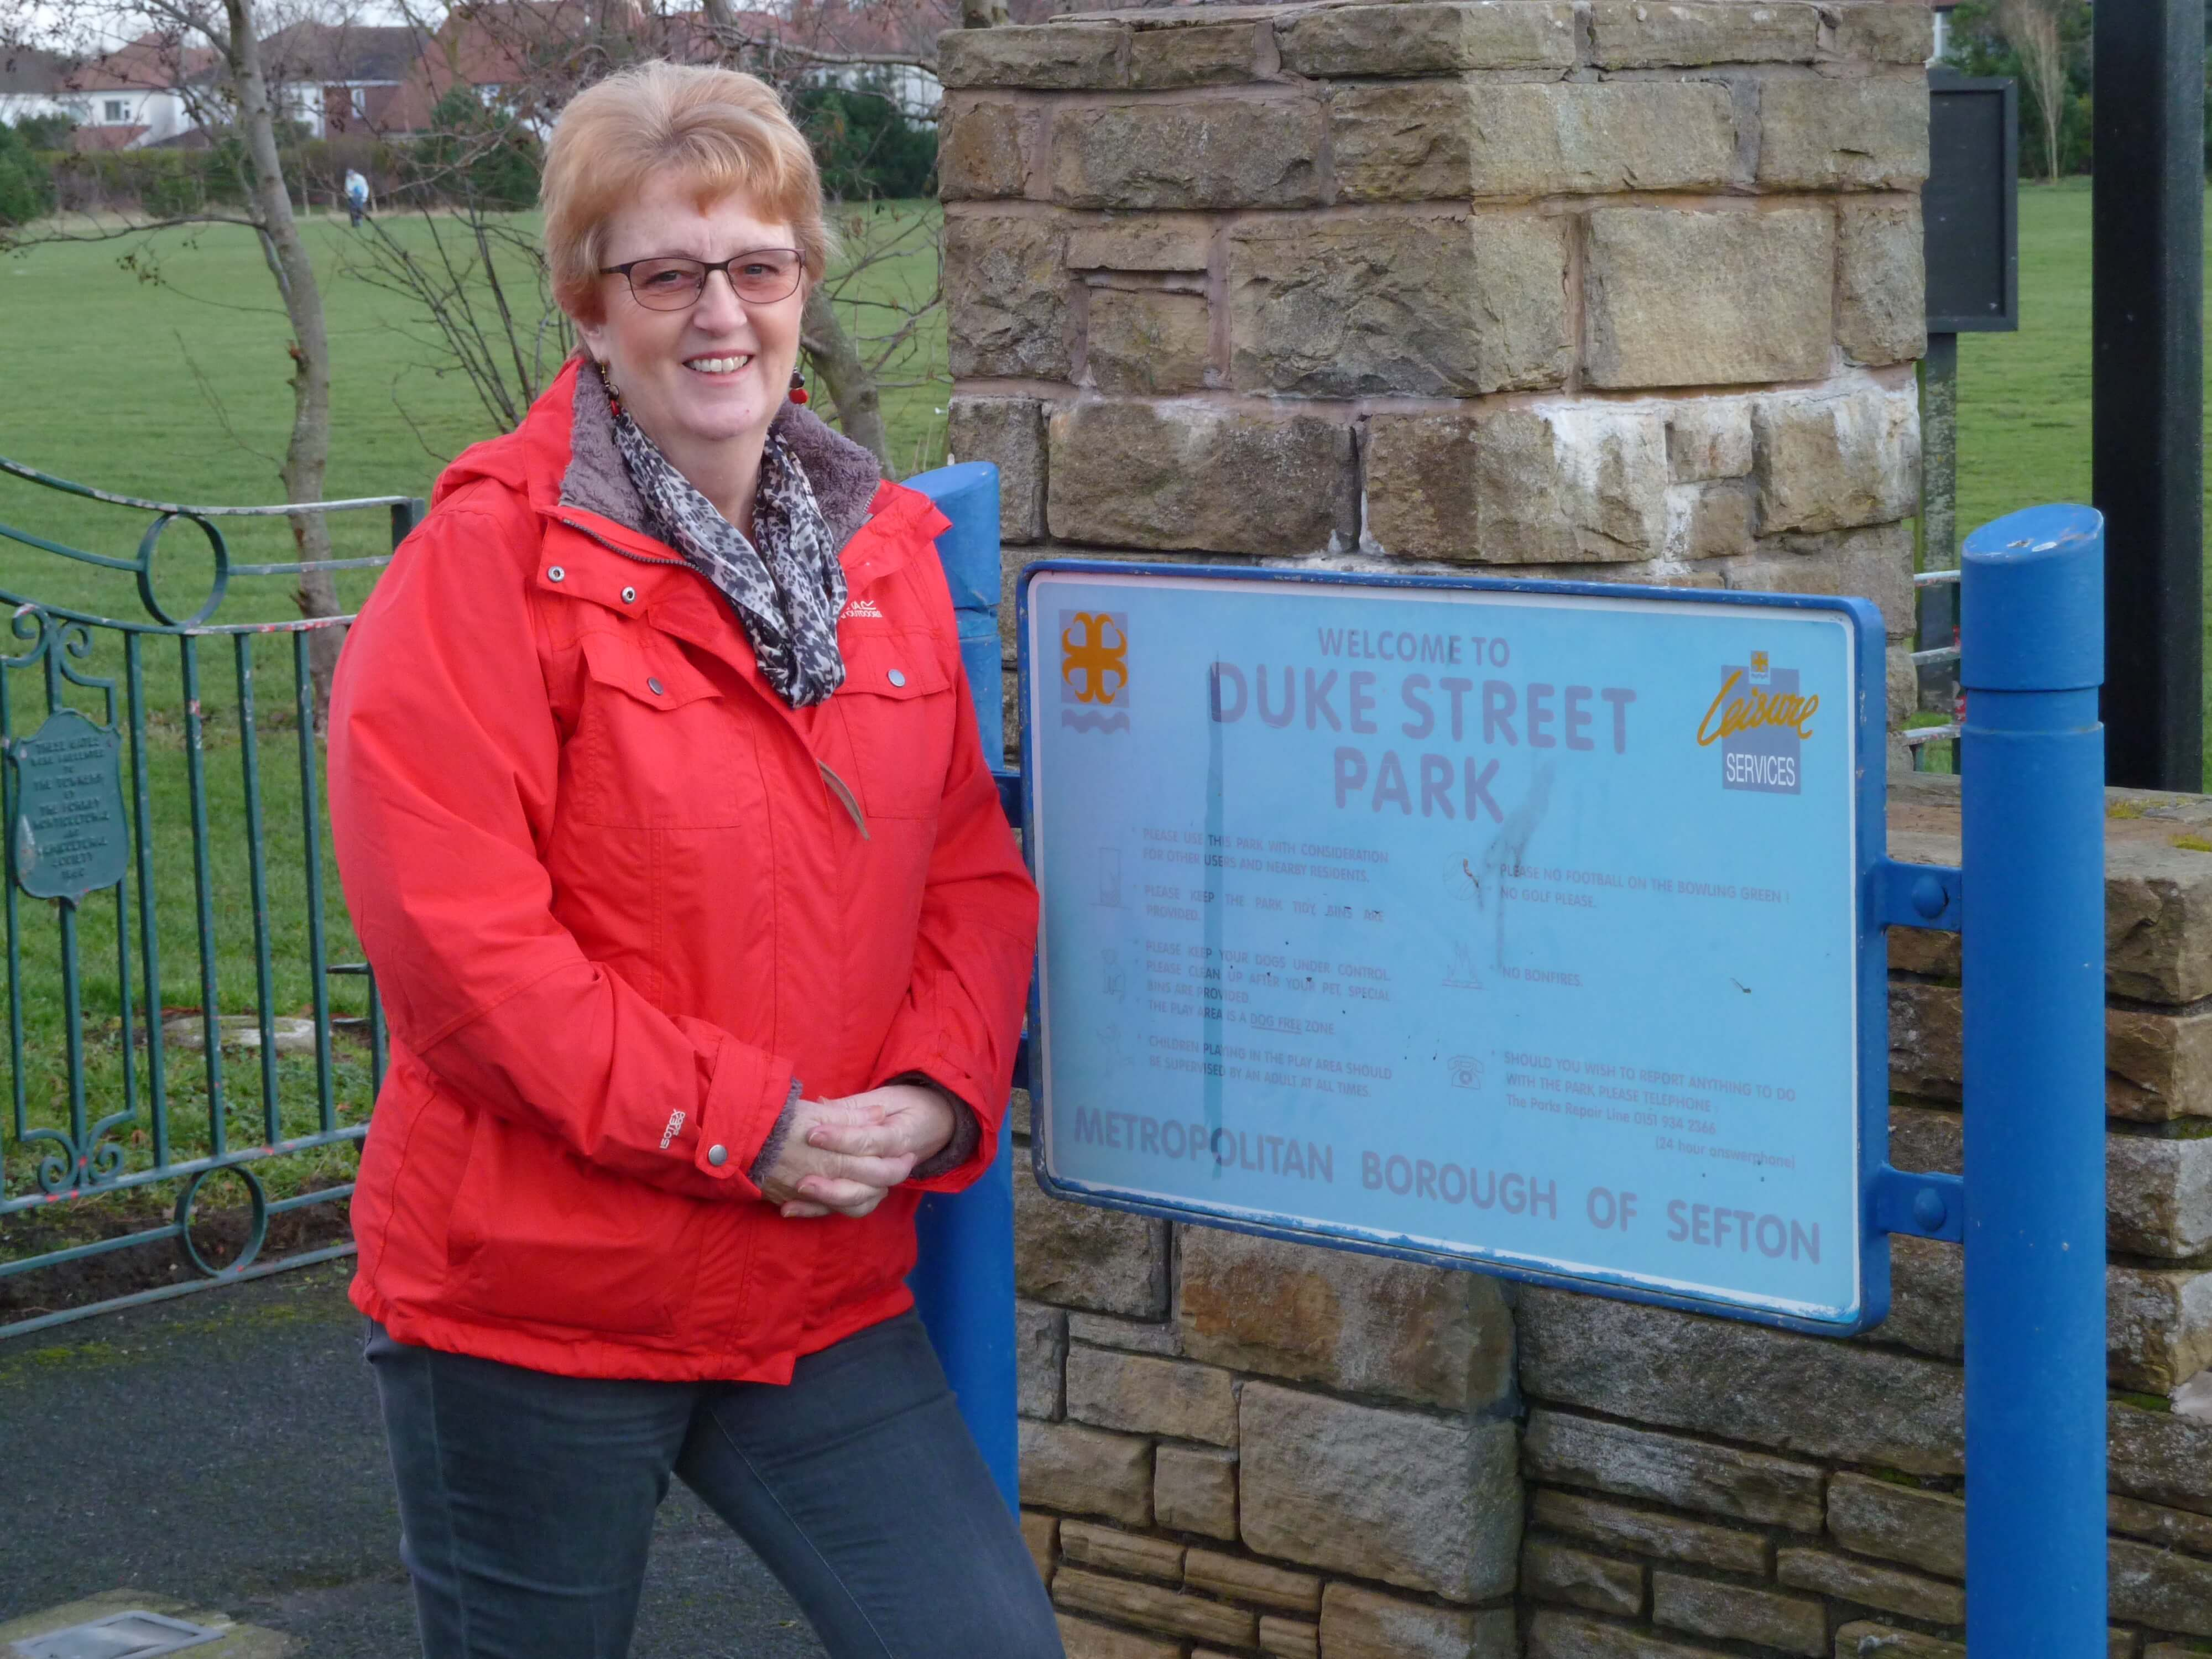 Formby Labour councillor Catie Page is urging people to have their say on future of Duke Street Park.